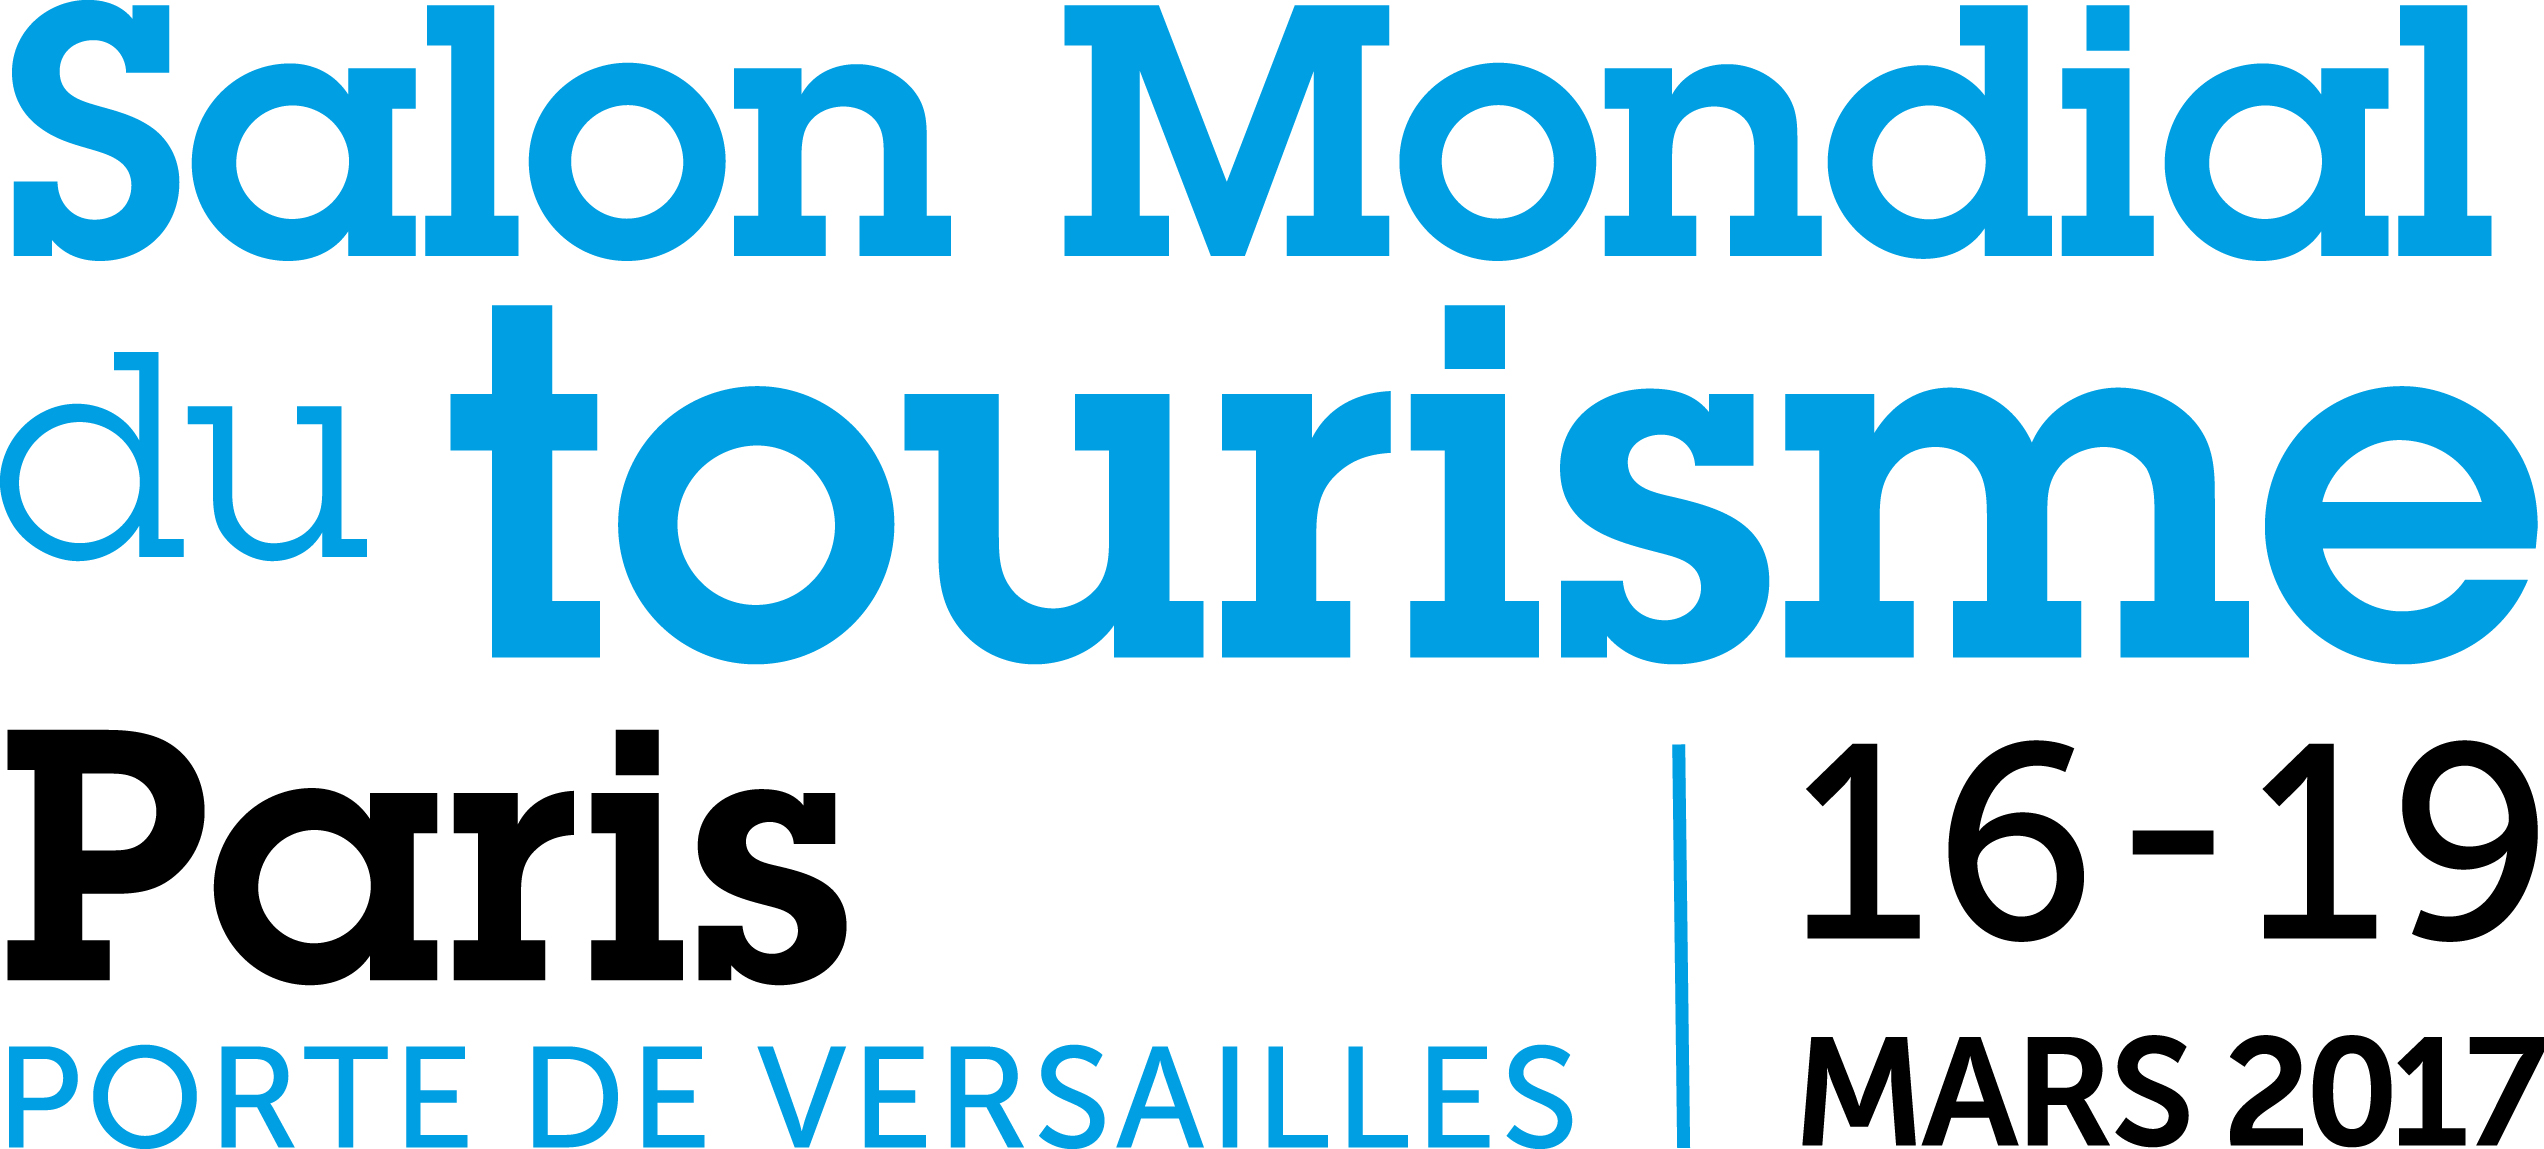 Accueil acteurs du tourisme durable tourisme durable for Salon e commerce paris 2017